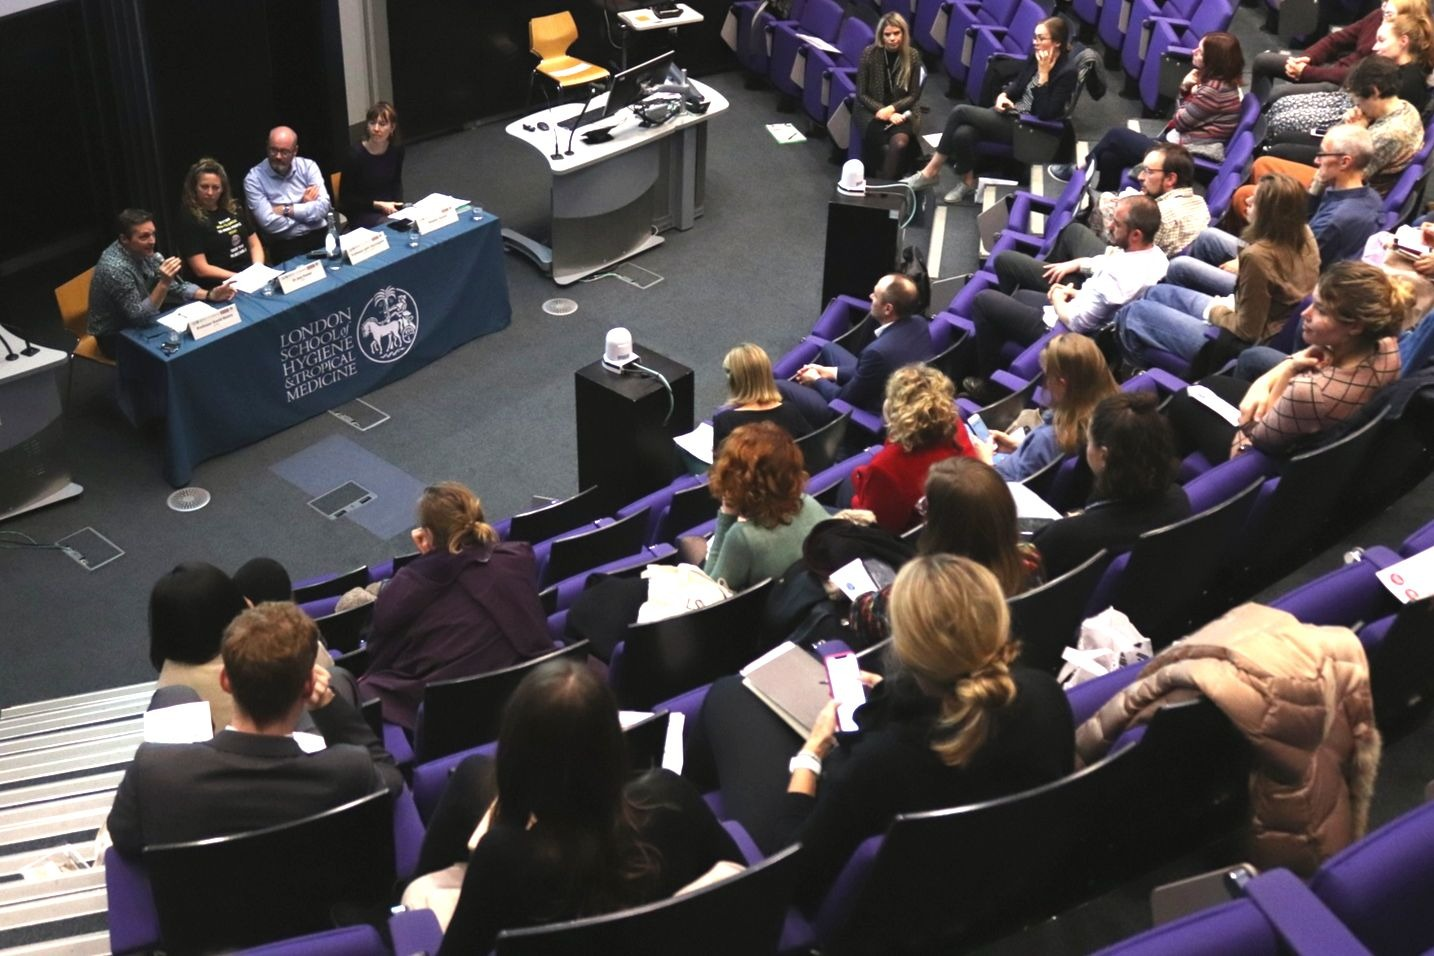 UnMasked Screening and panel at LSHTM